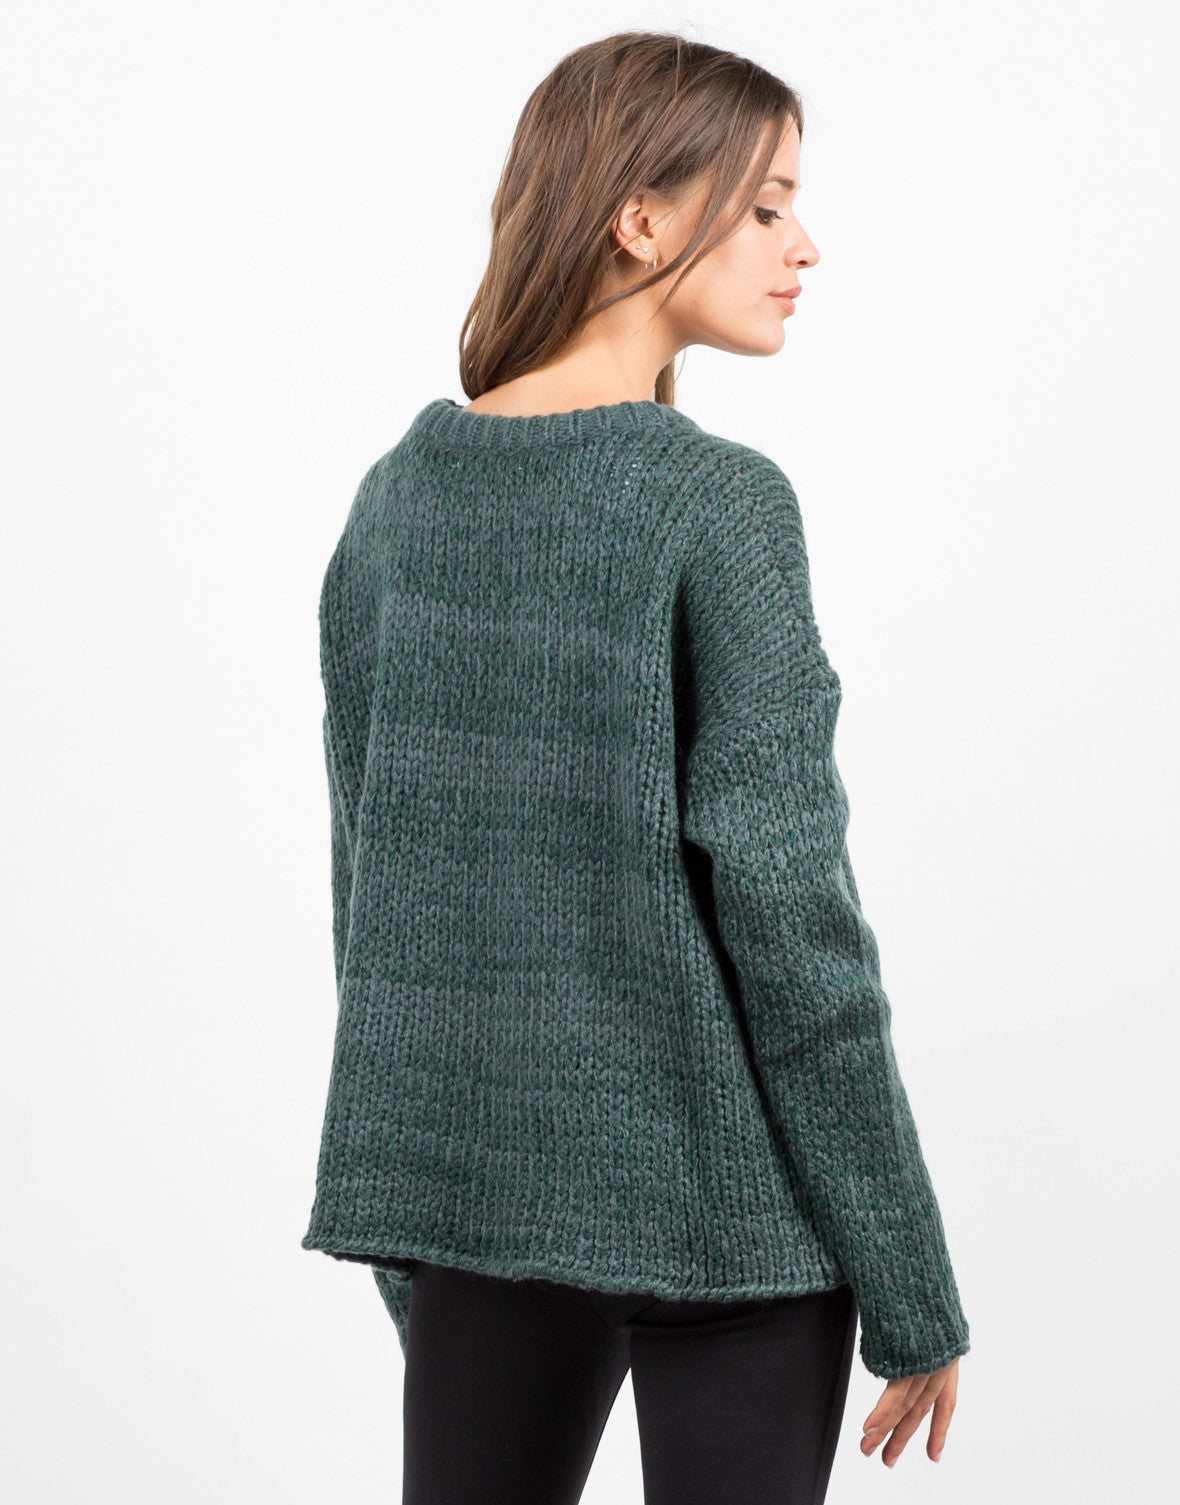 Side View of Wide Chunky Knit Sweater